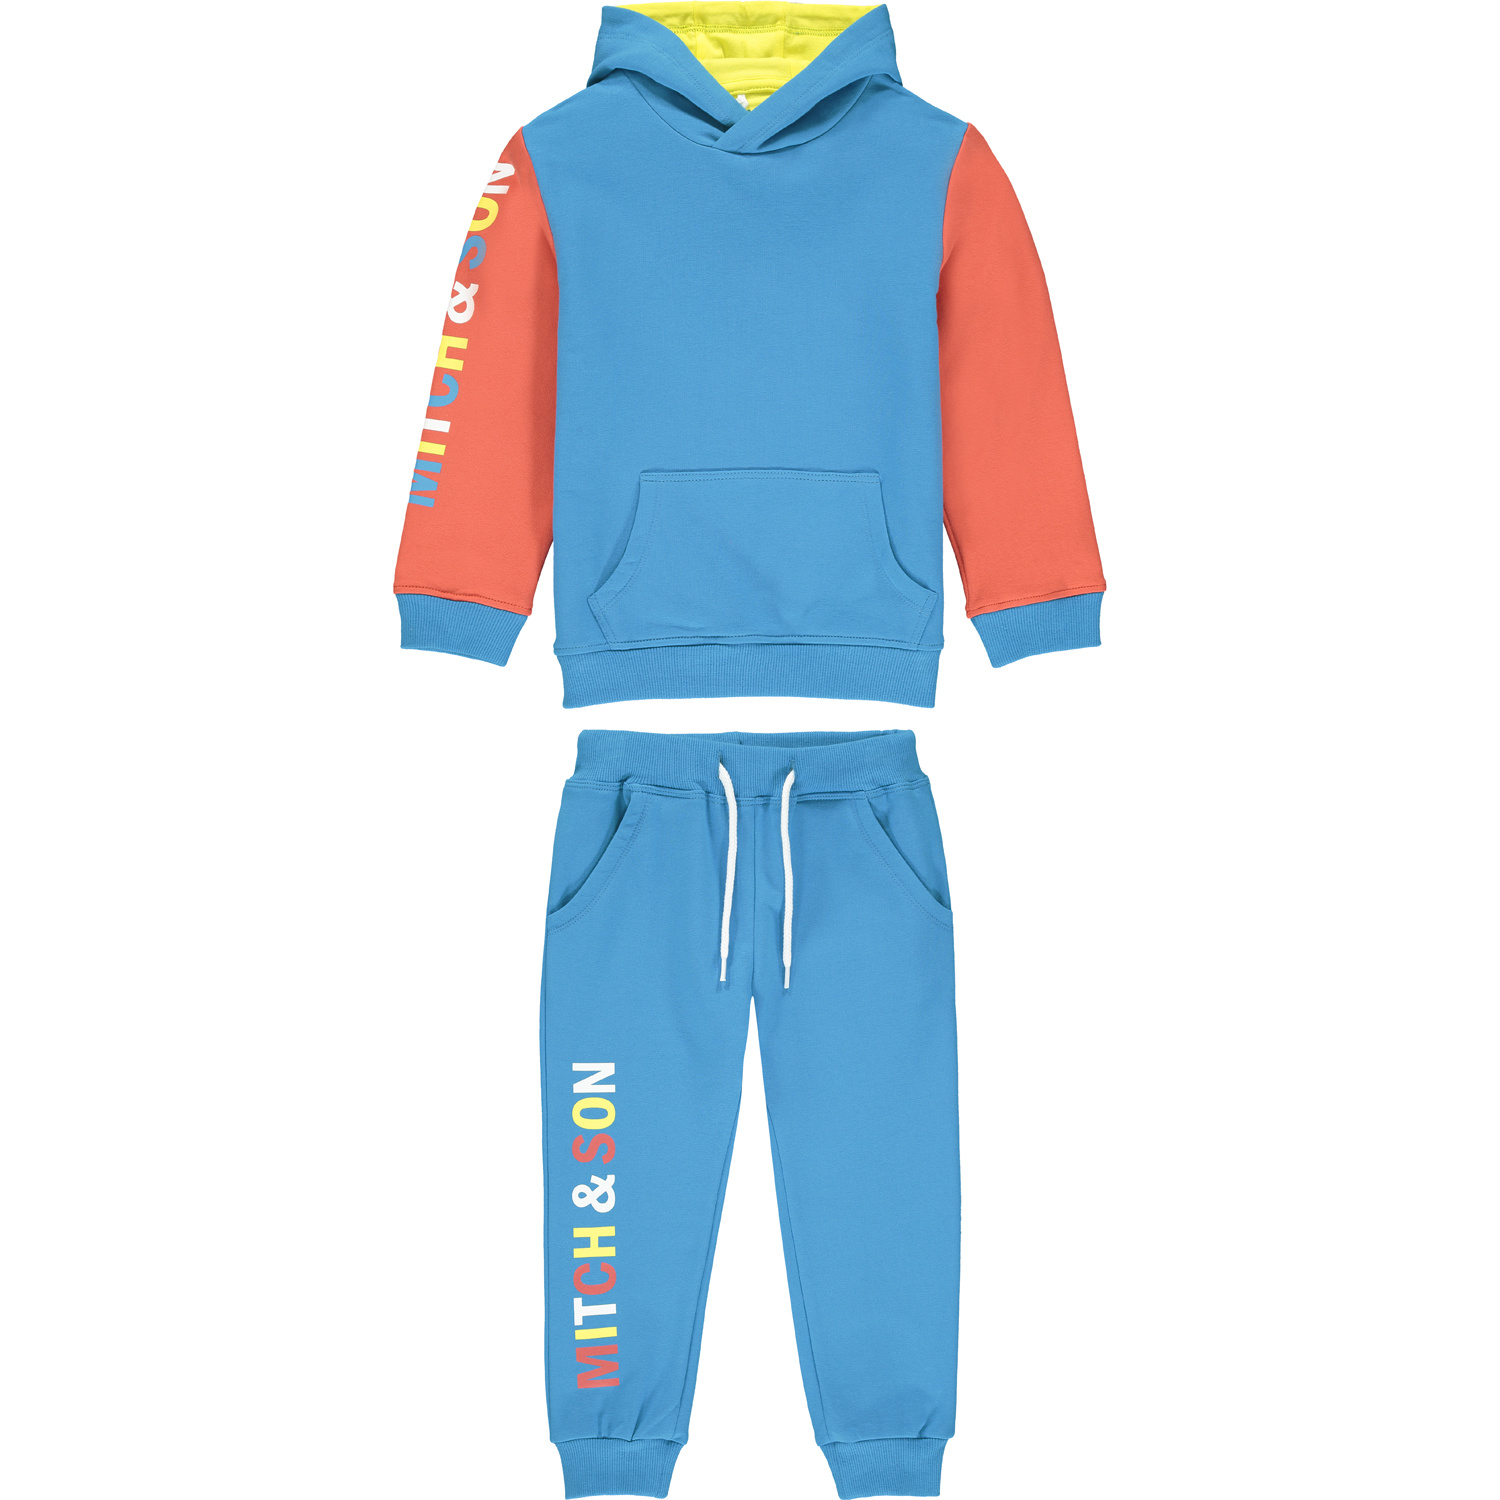 Mitch and Son Mitch & Son Cambridge Hoody Tracksuit